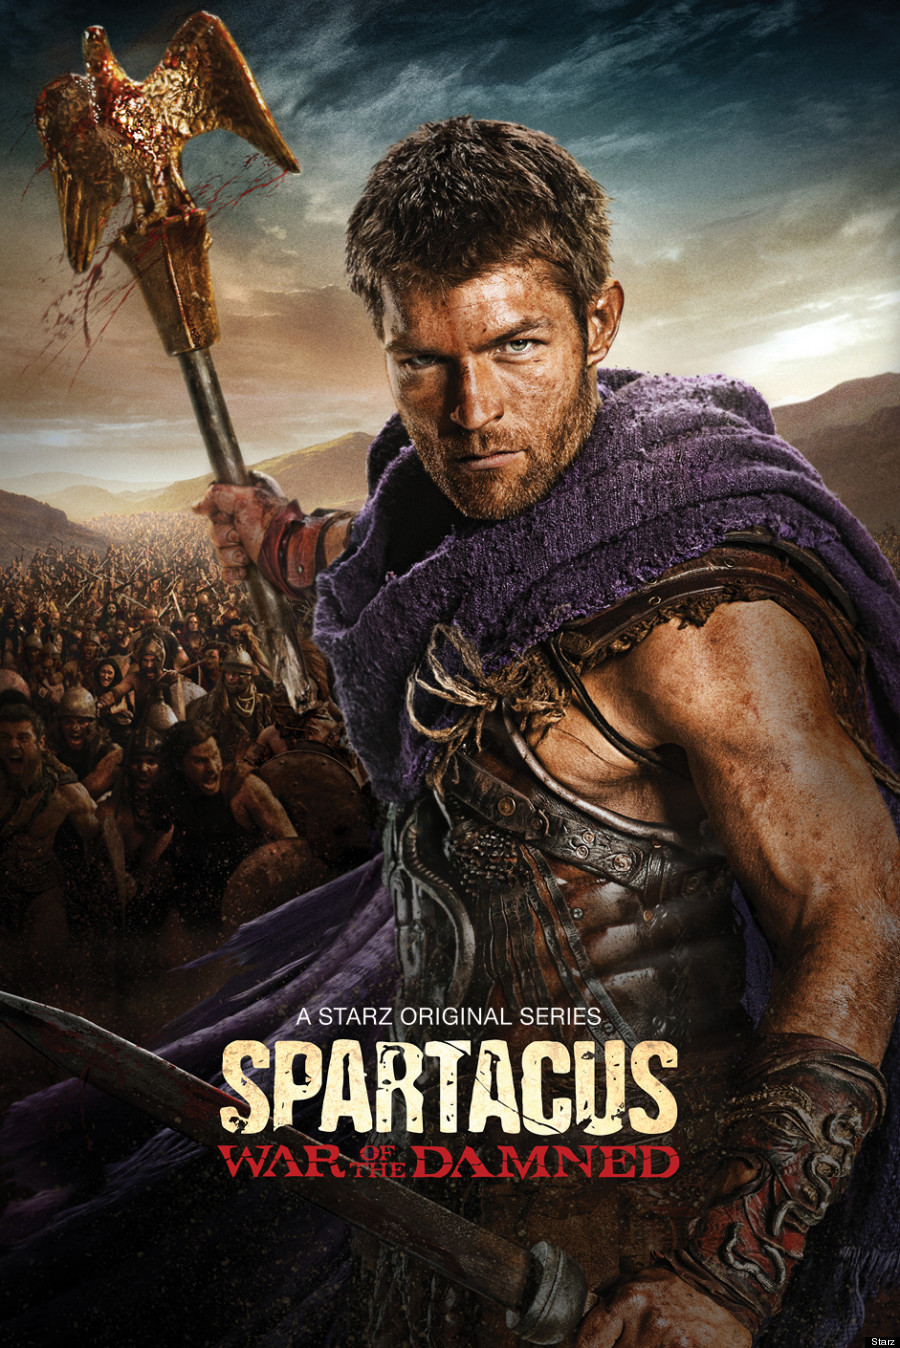 http://i.huffpost.com/gen/881855/thumbs/o-SPARTACUS-WAR-OF-THE-DAMNED-900.jpg?1